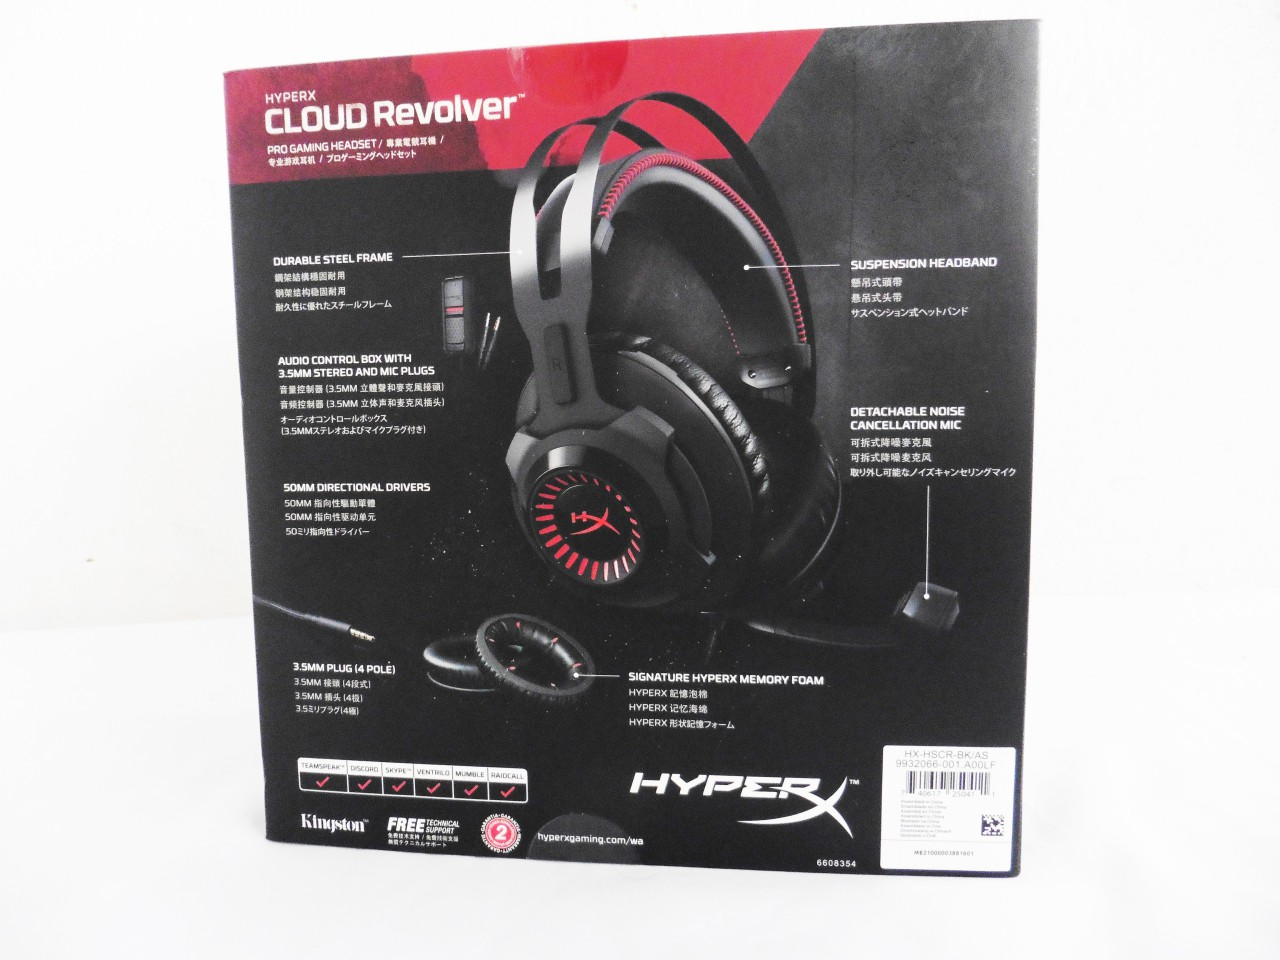 Kind of lining can you expect on the kingston hyperx cloud ii headset - Behind The Box You Ll Find A Well Labelled Diagram Of The Hyperx Cloud Revolver Notice On Free Technical Support And A Limited 2 Year Warranty Coverage